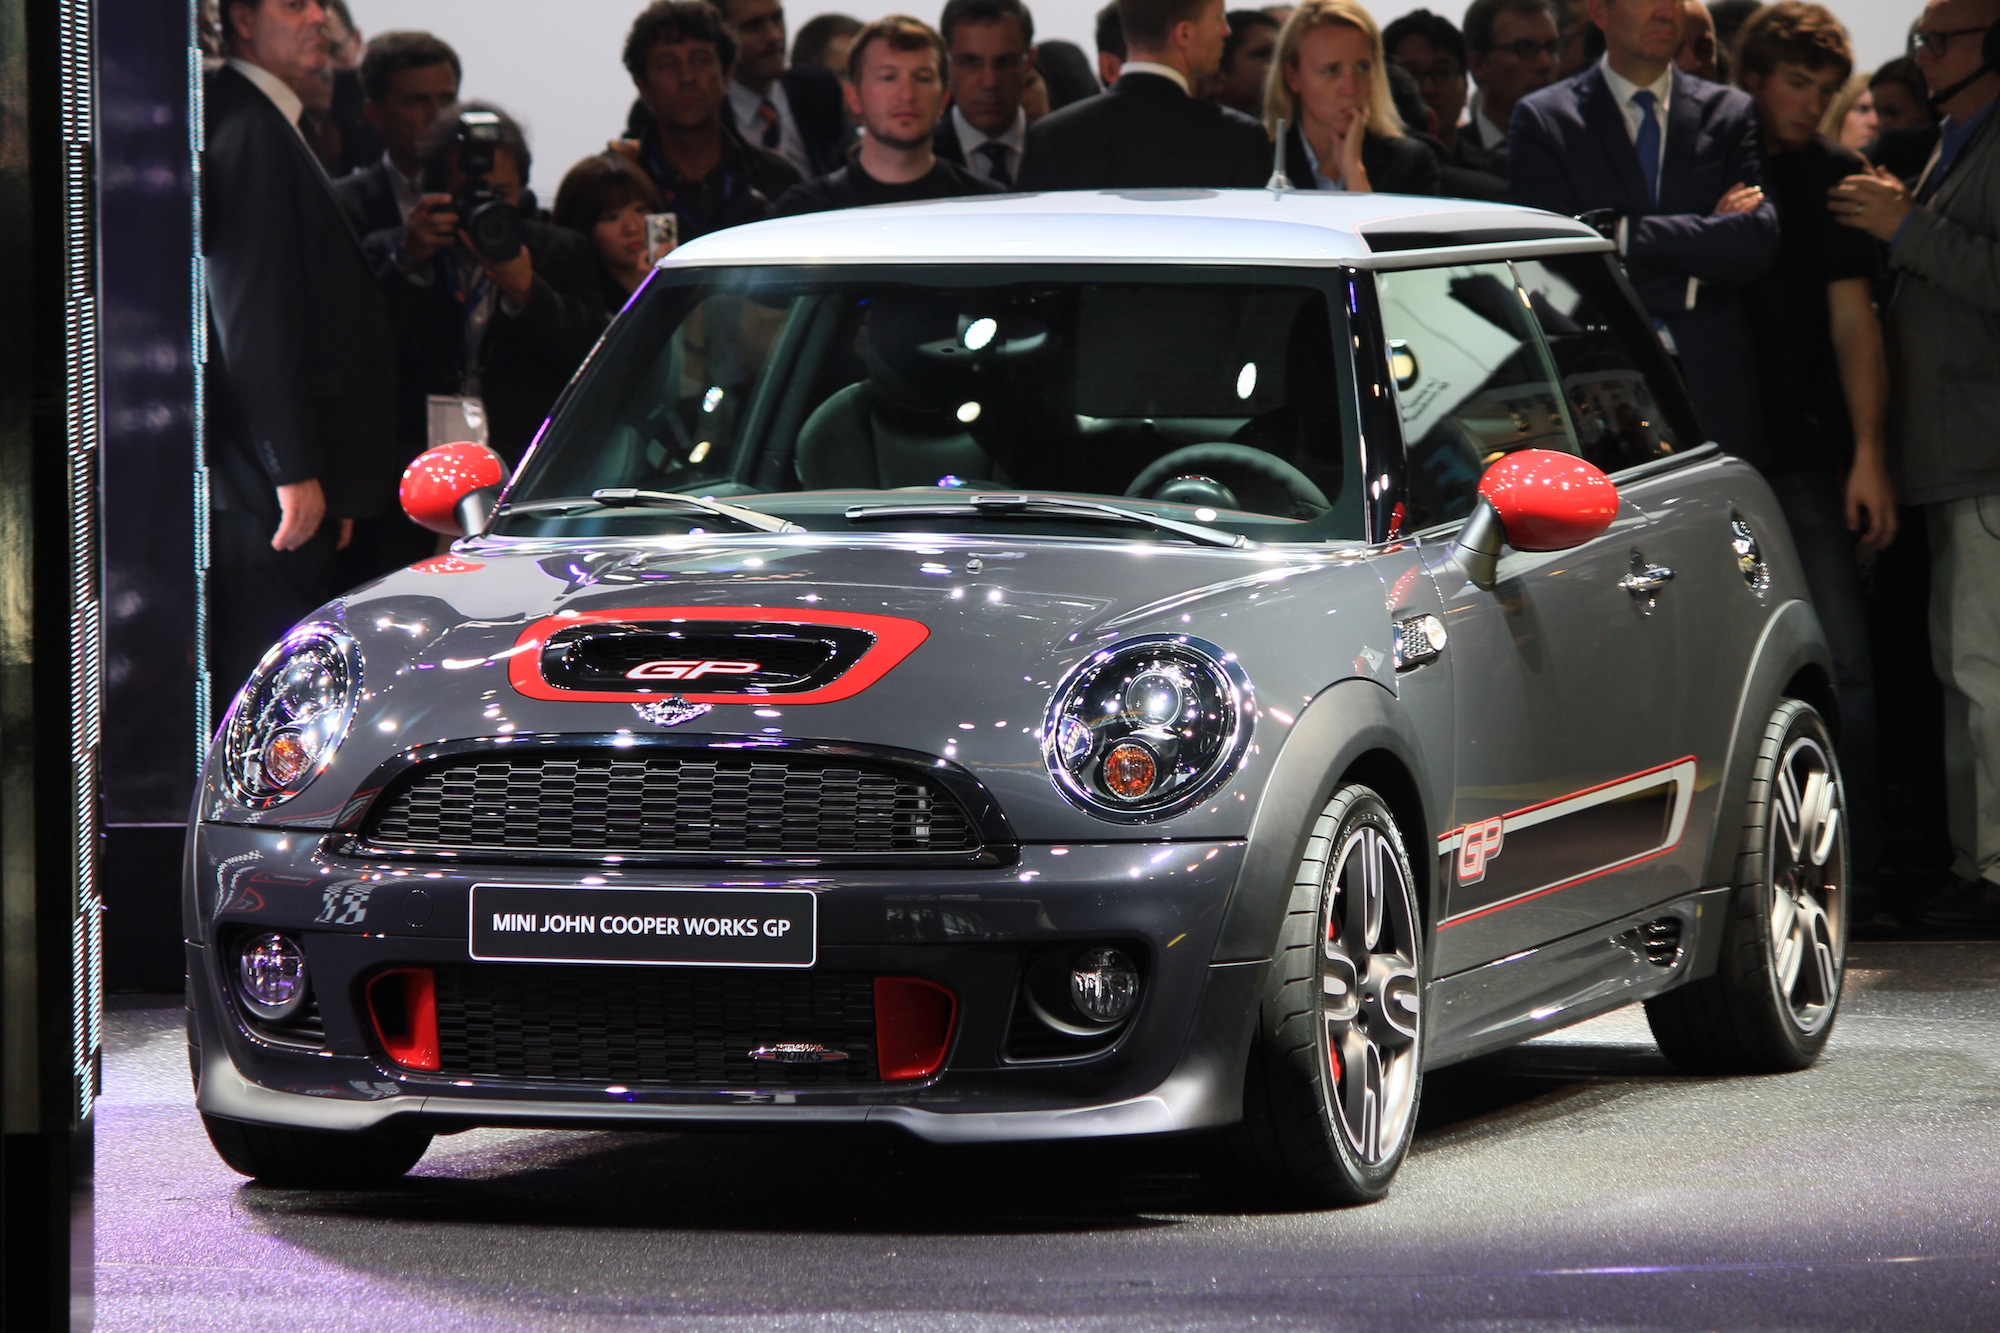 2013 mini john cooper works gp live photos 2012 paris. Black Bedroom Furniture Sets. Home Design Ideas